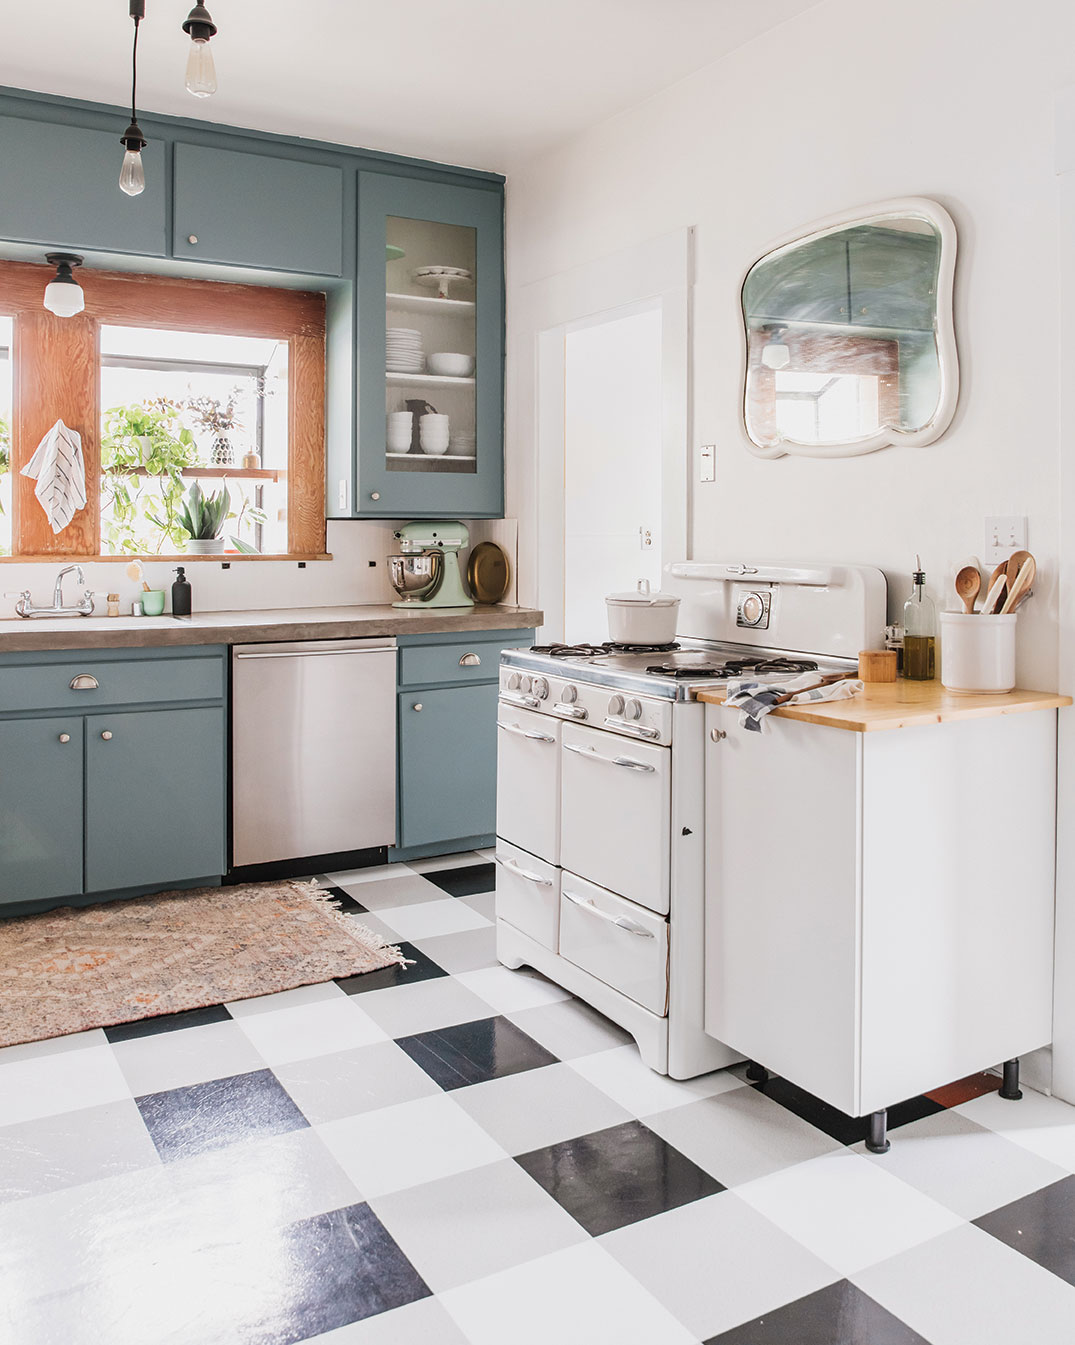 DIY kitchen changes retro peel and stick flooring black and white with a vintage stove